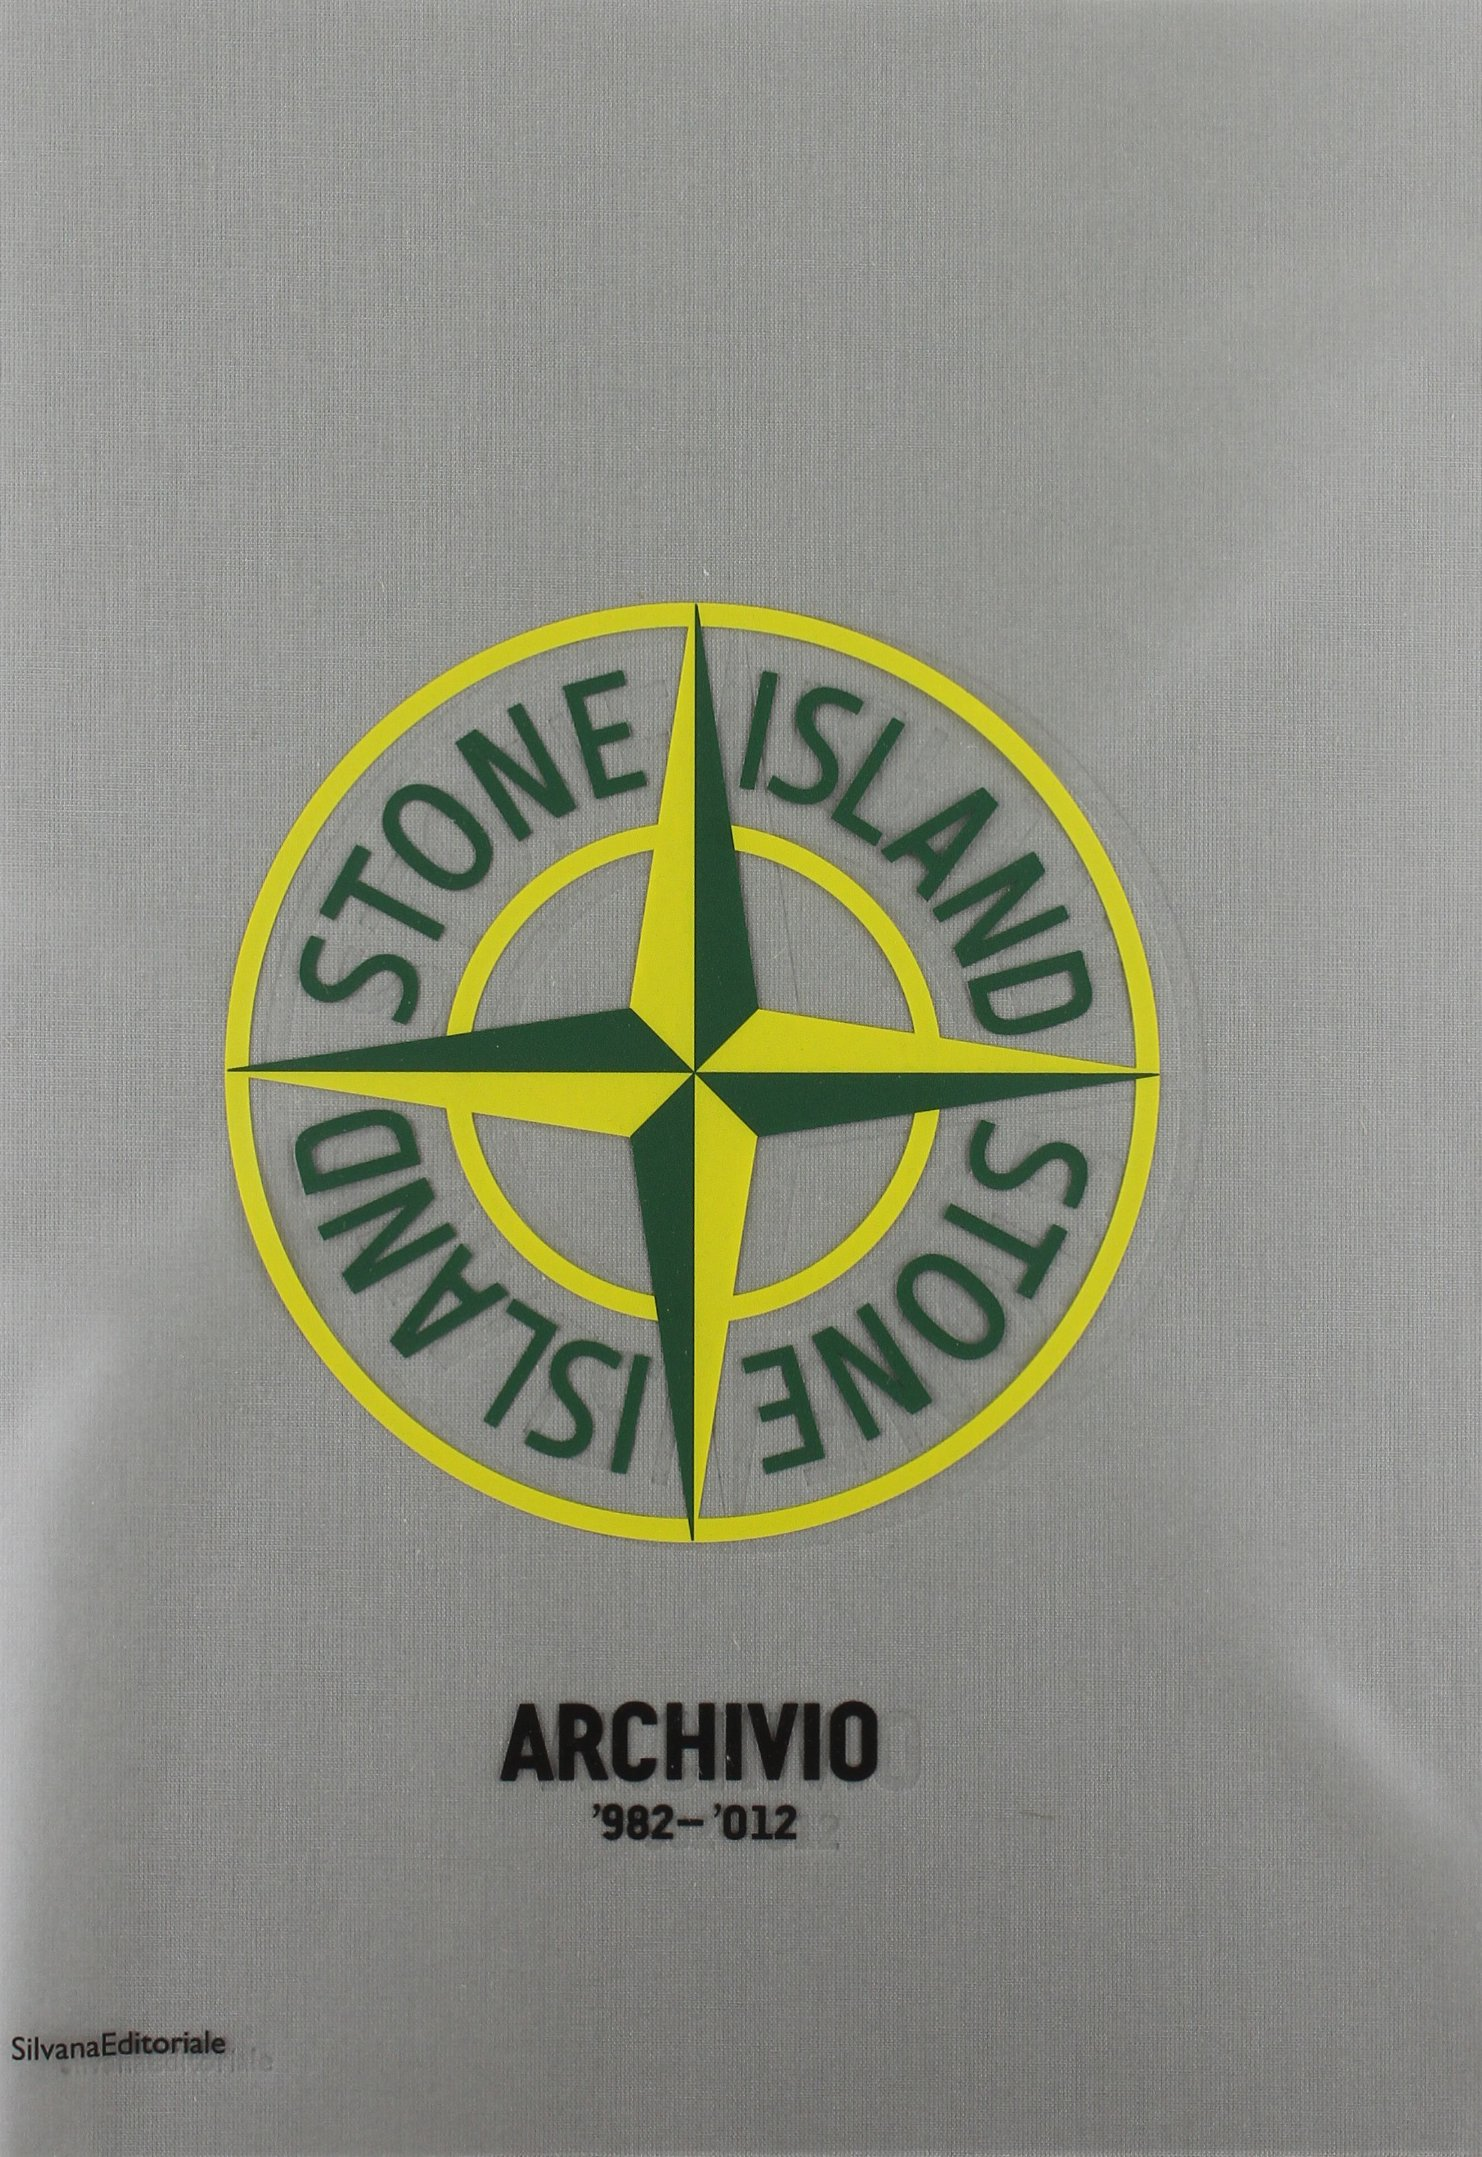 Stone Island: Archives 982-012